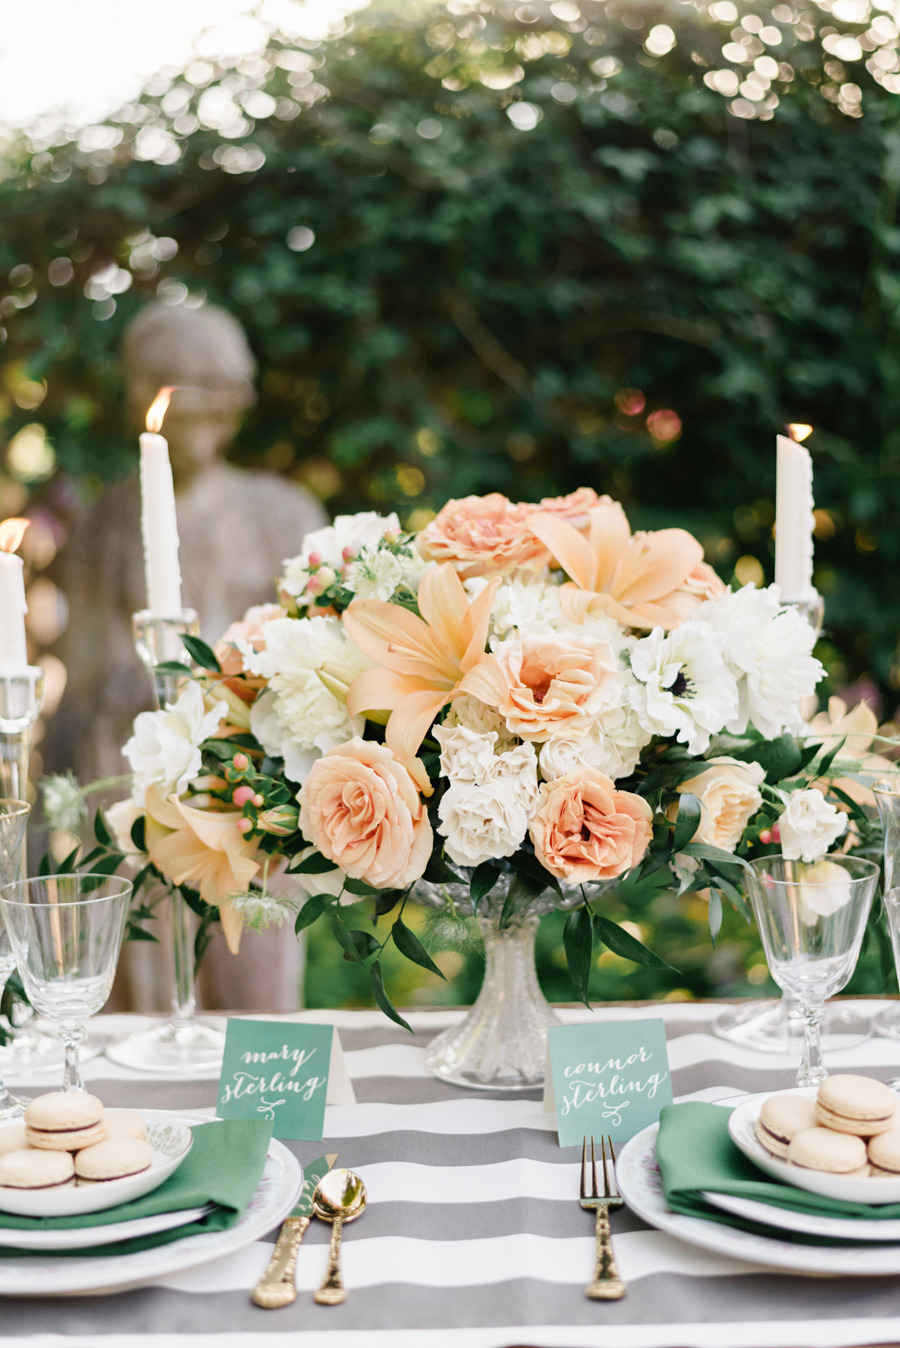 spring wedding centerpieces,Peach colored wedding centerpieces | Photography: Joe and Patience - joeandpatience.com/